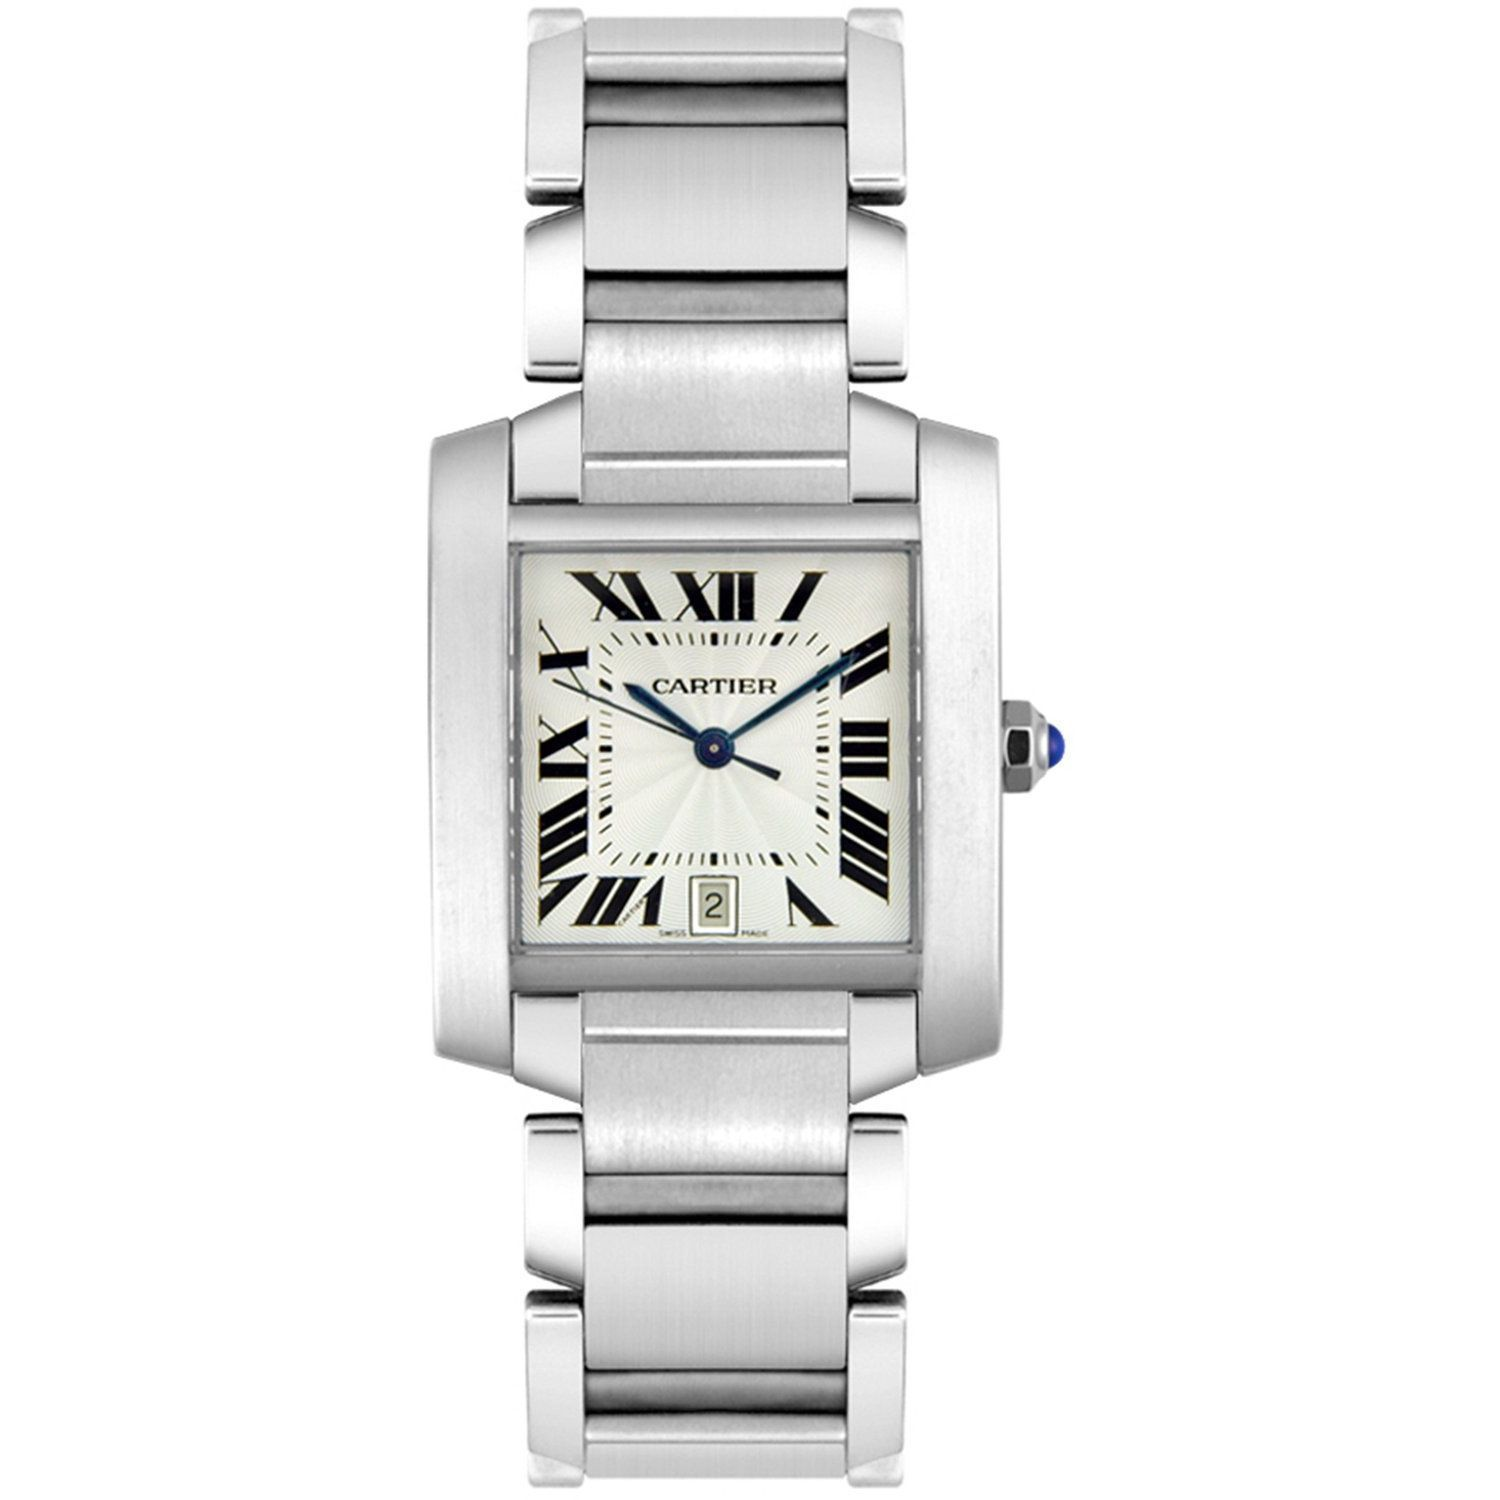 Cartier Men's W51002Q3 'Tank' Automatic Silver Stainless ...